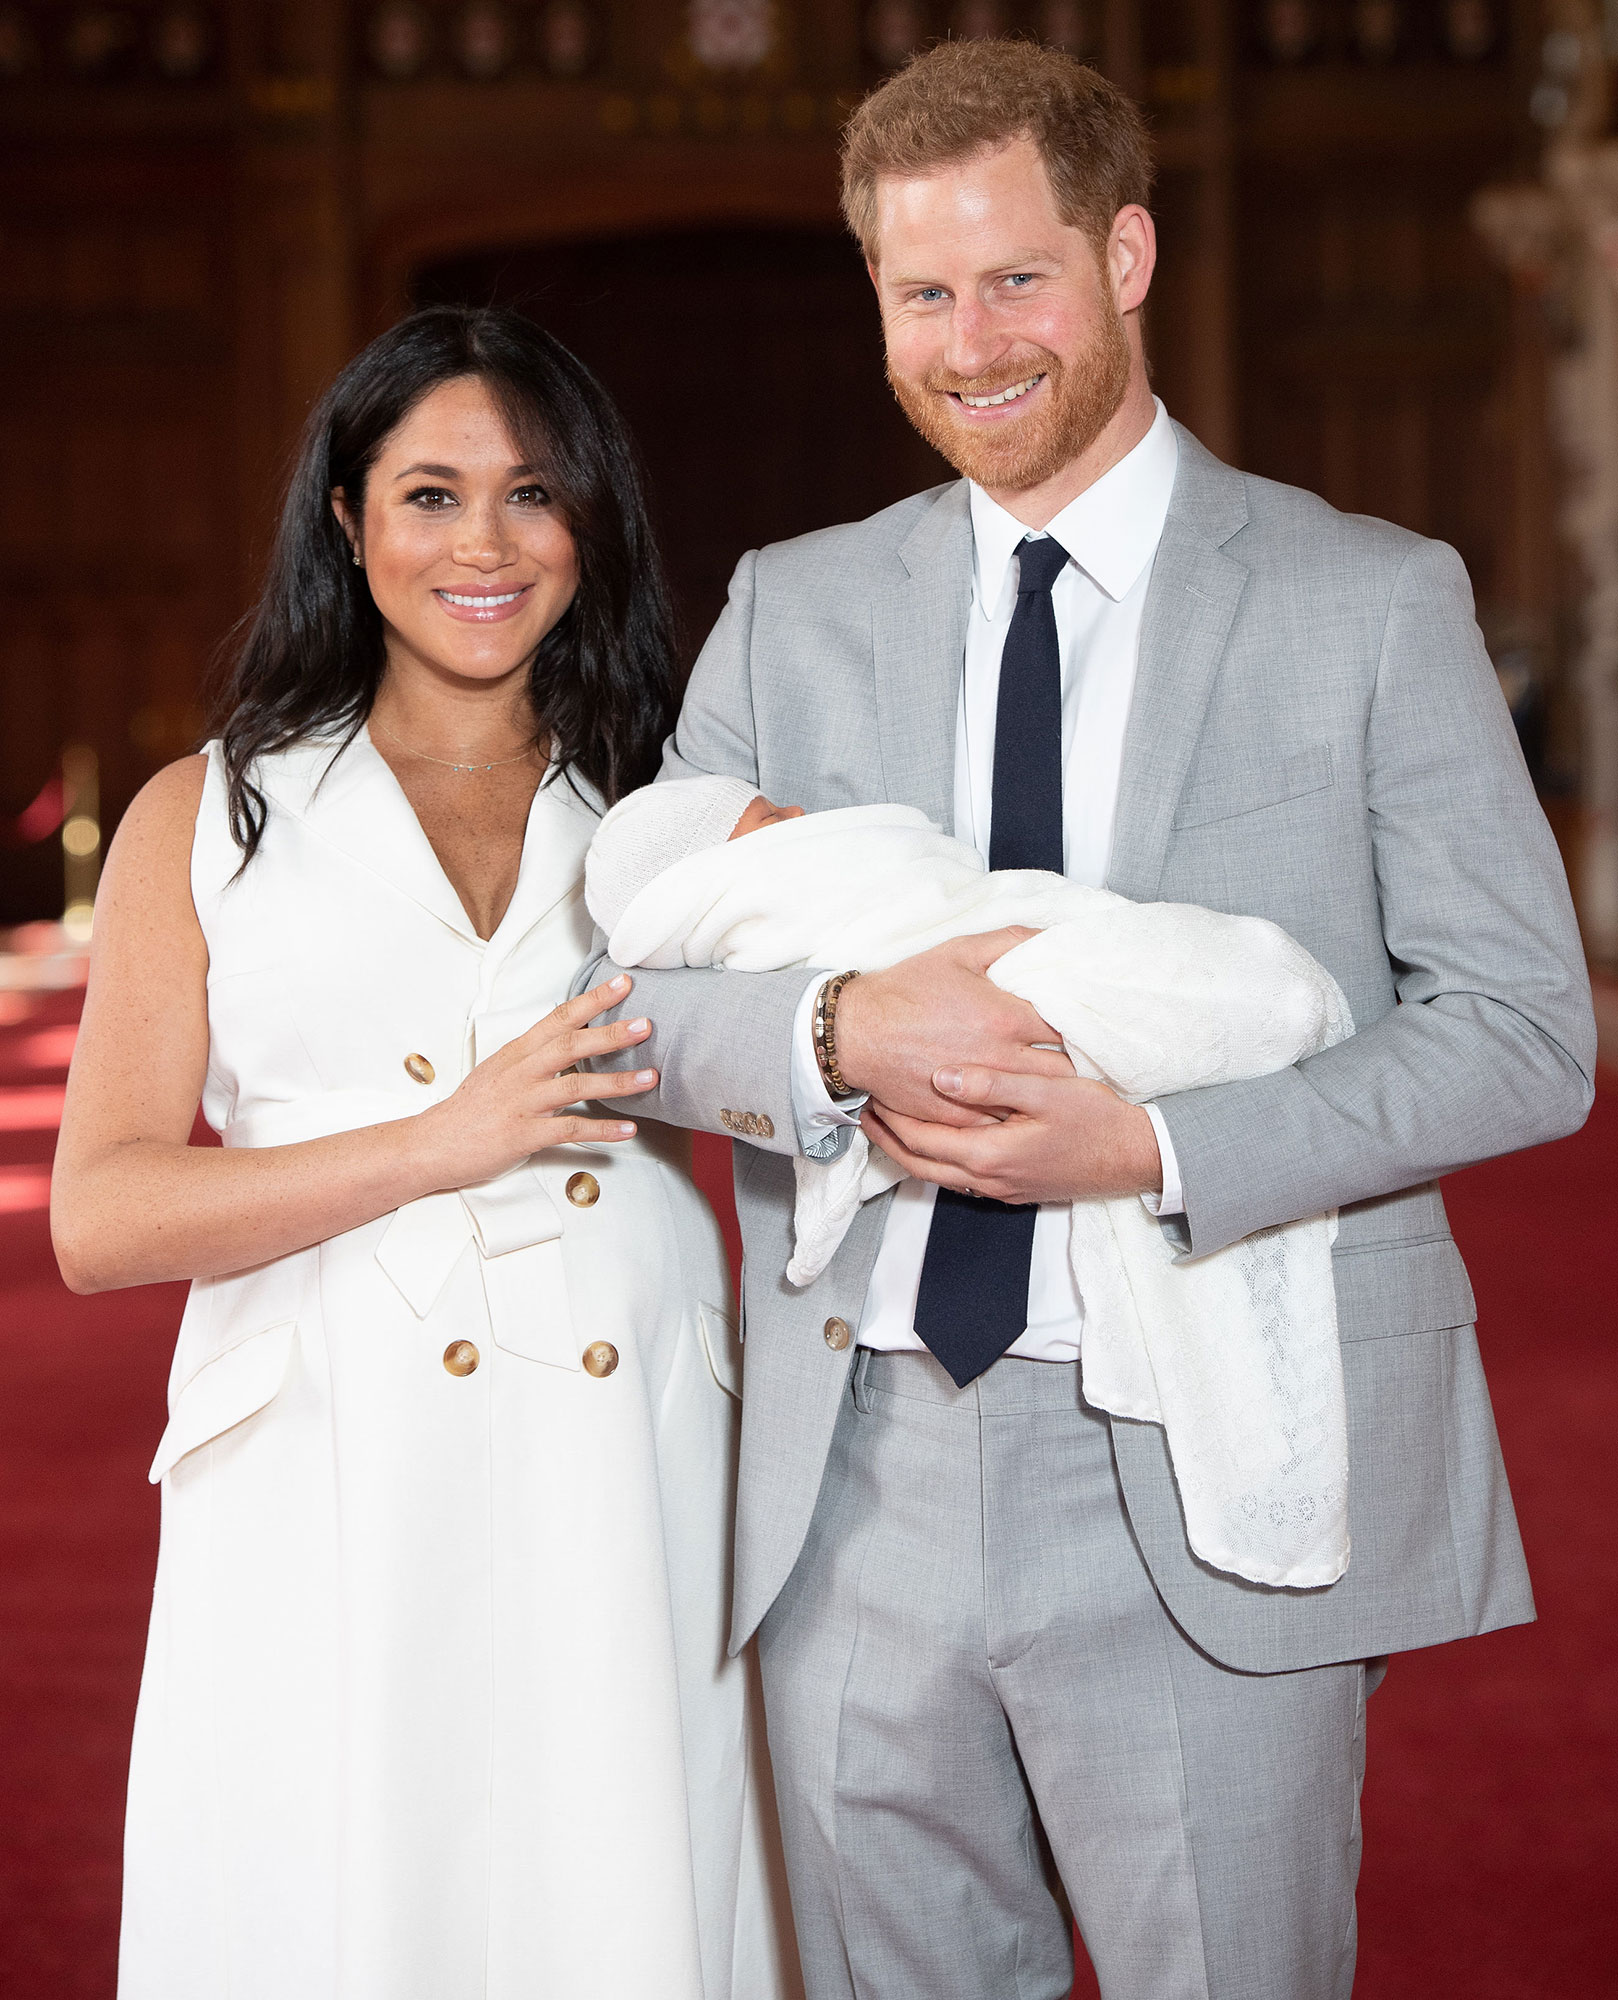 Baby Archie Takes Center Stage In Harry And Meghan's